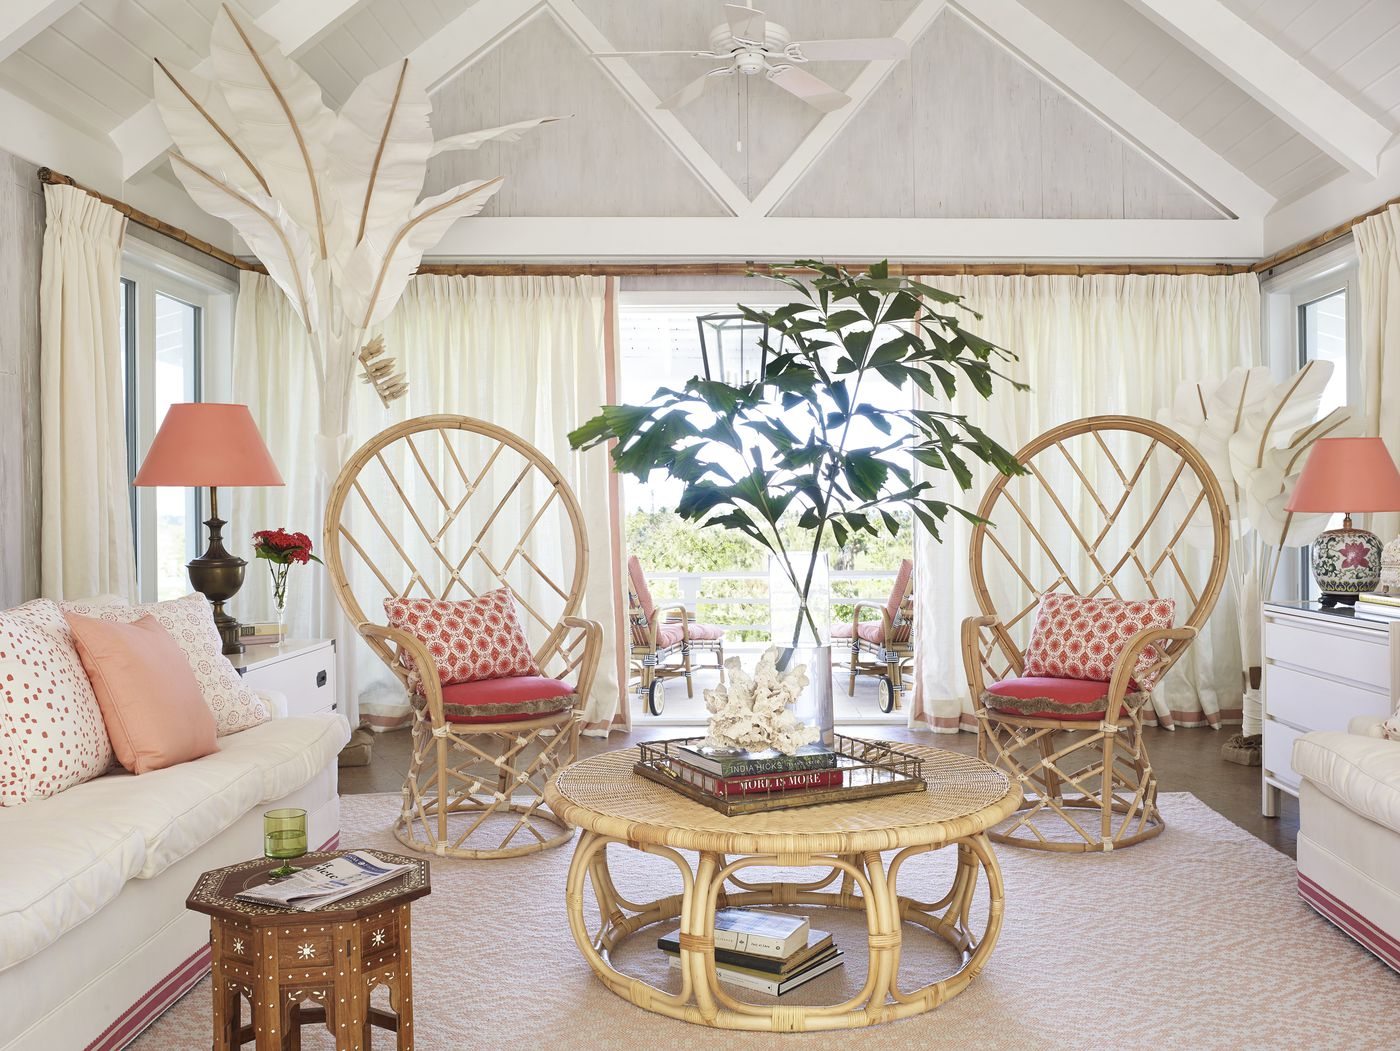 Rattan Woven Furniture From Ikea To Anthropologie Chairs To Chandeliers Vox